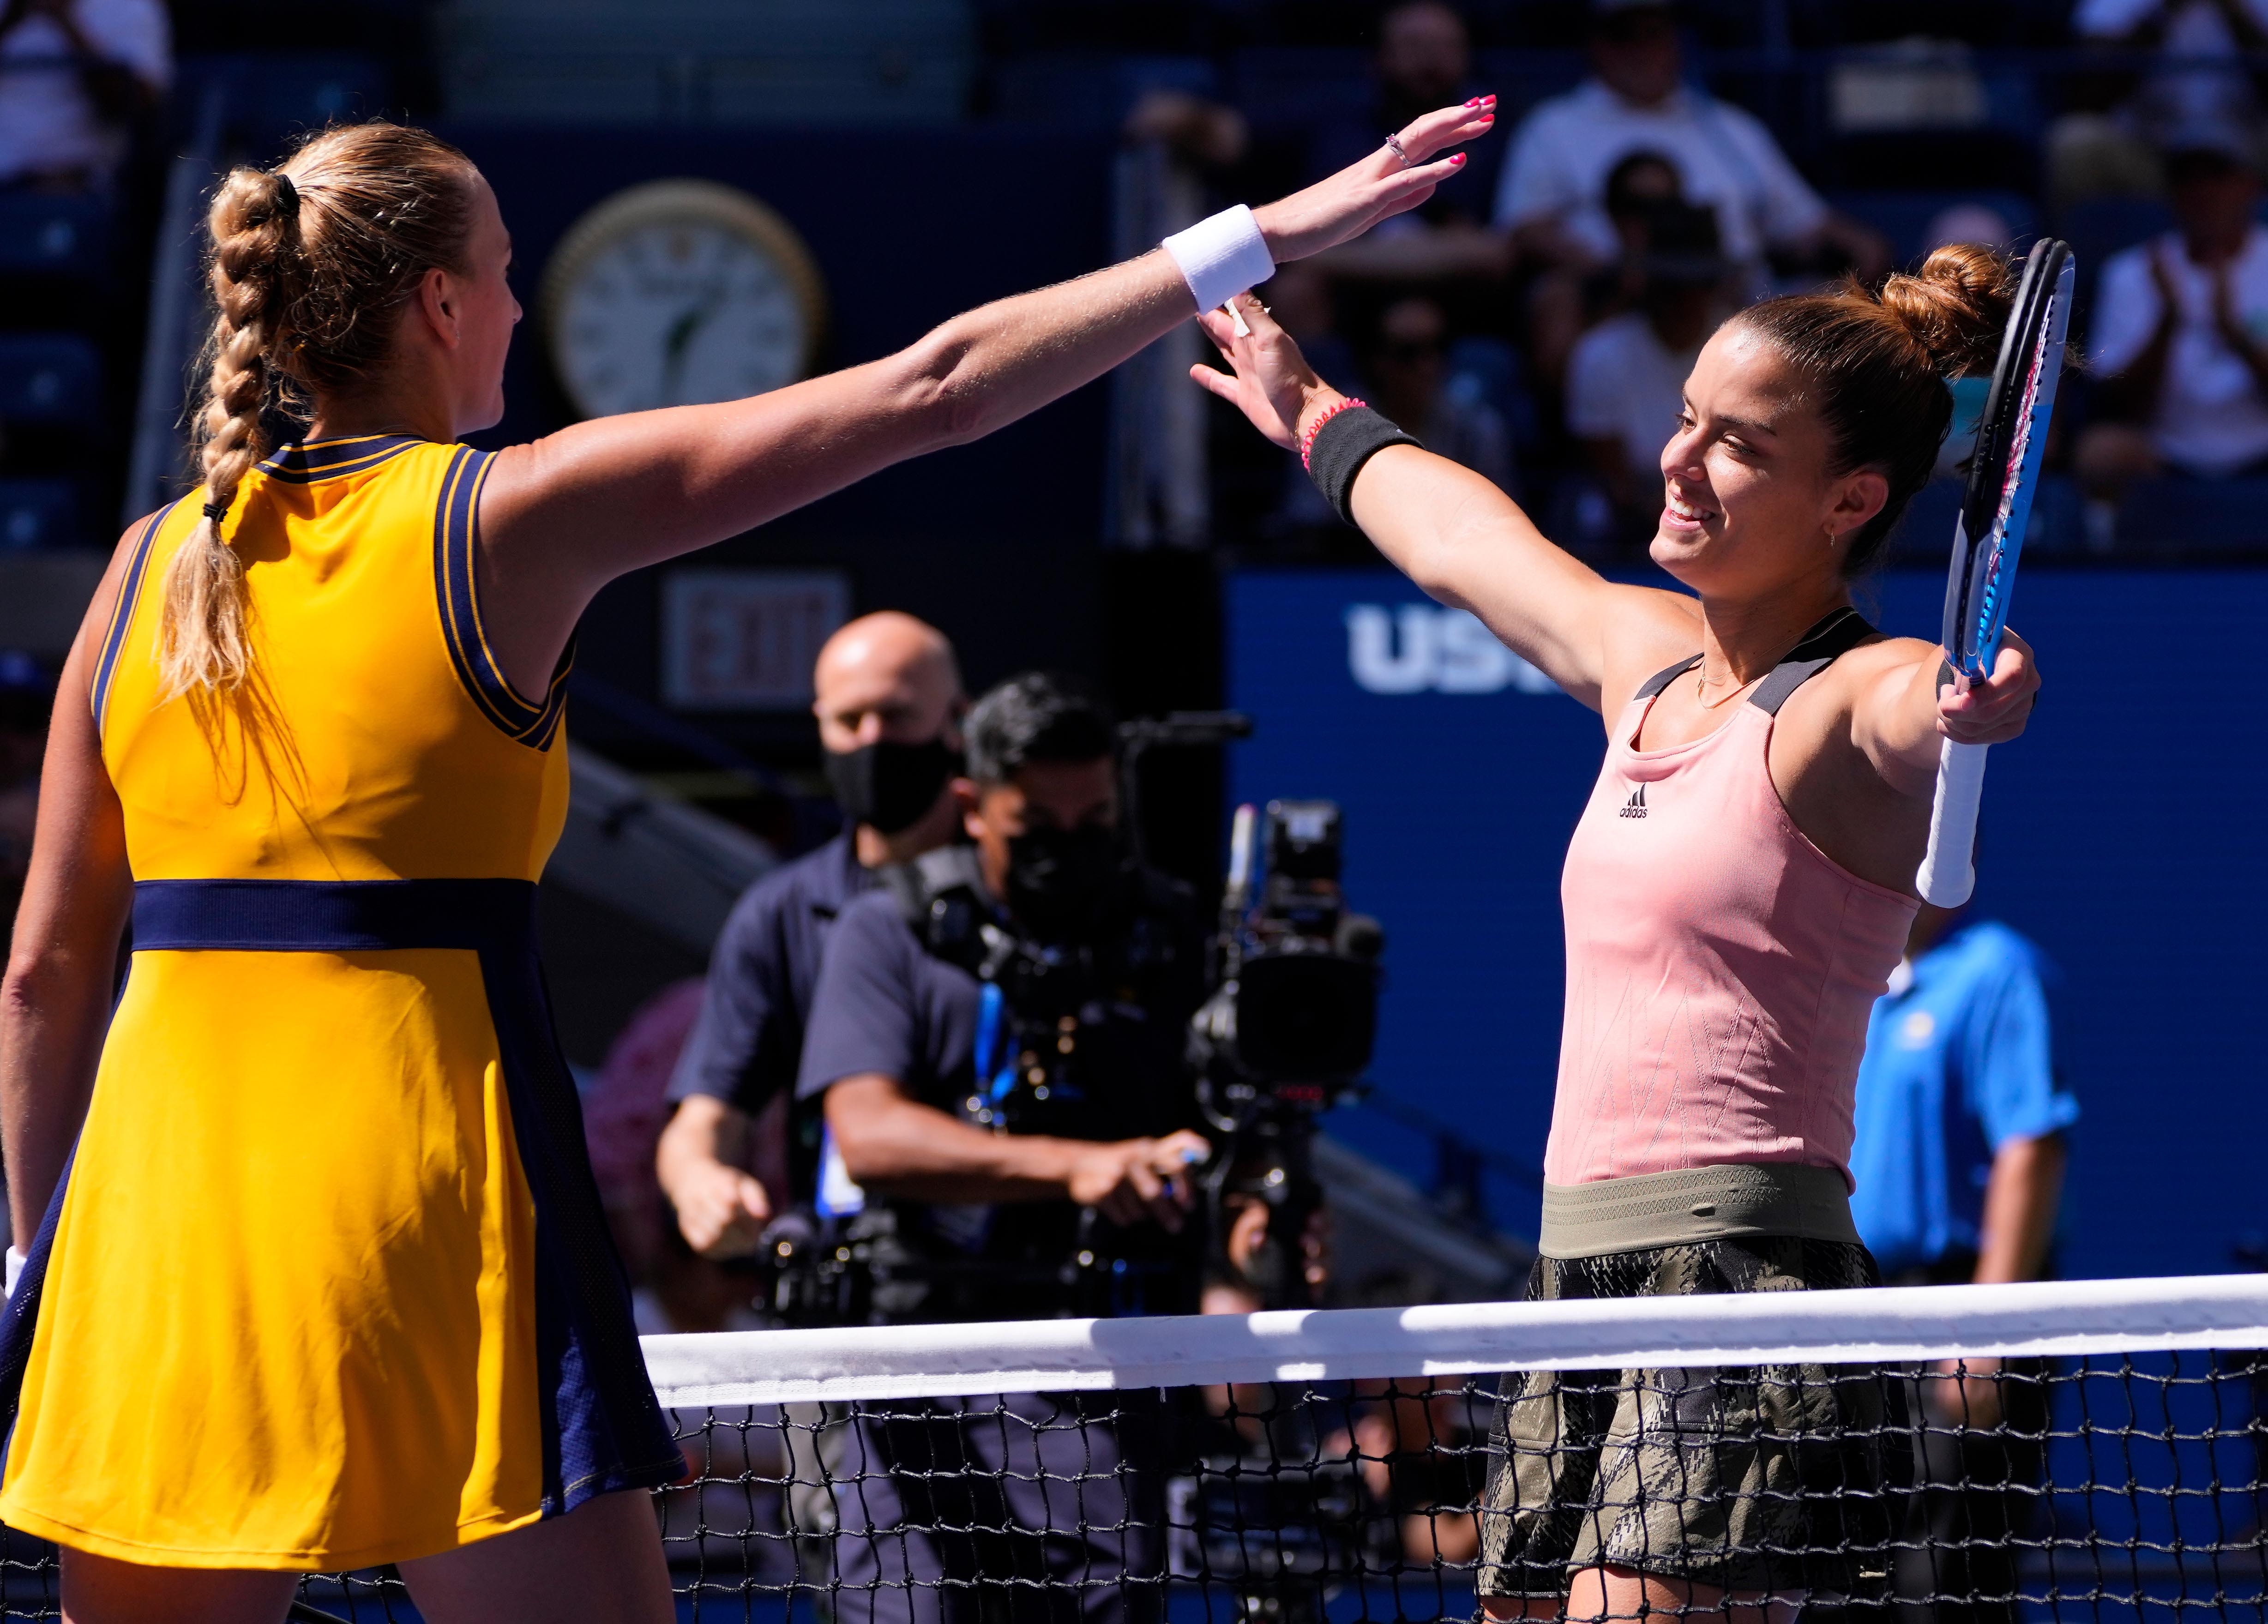 Sep 4, 2021; Flushing, NY, USA; Maria Sakkari of Greece, right, greets Petra Kvitova of the Czech Republic after their third round match on day six of the 2021 U.S. Open tennis tournament at USTA Billie Jean King National Tennis Center. Mandatory Credit: Robert Deutsch-USA TODAY Sports